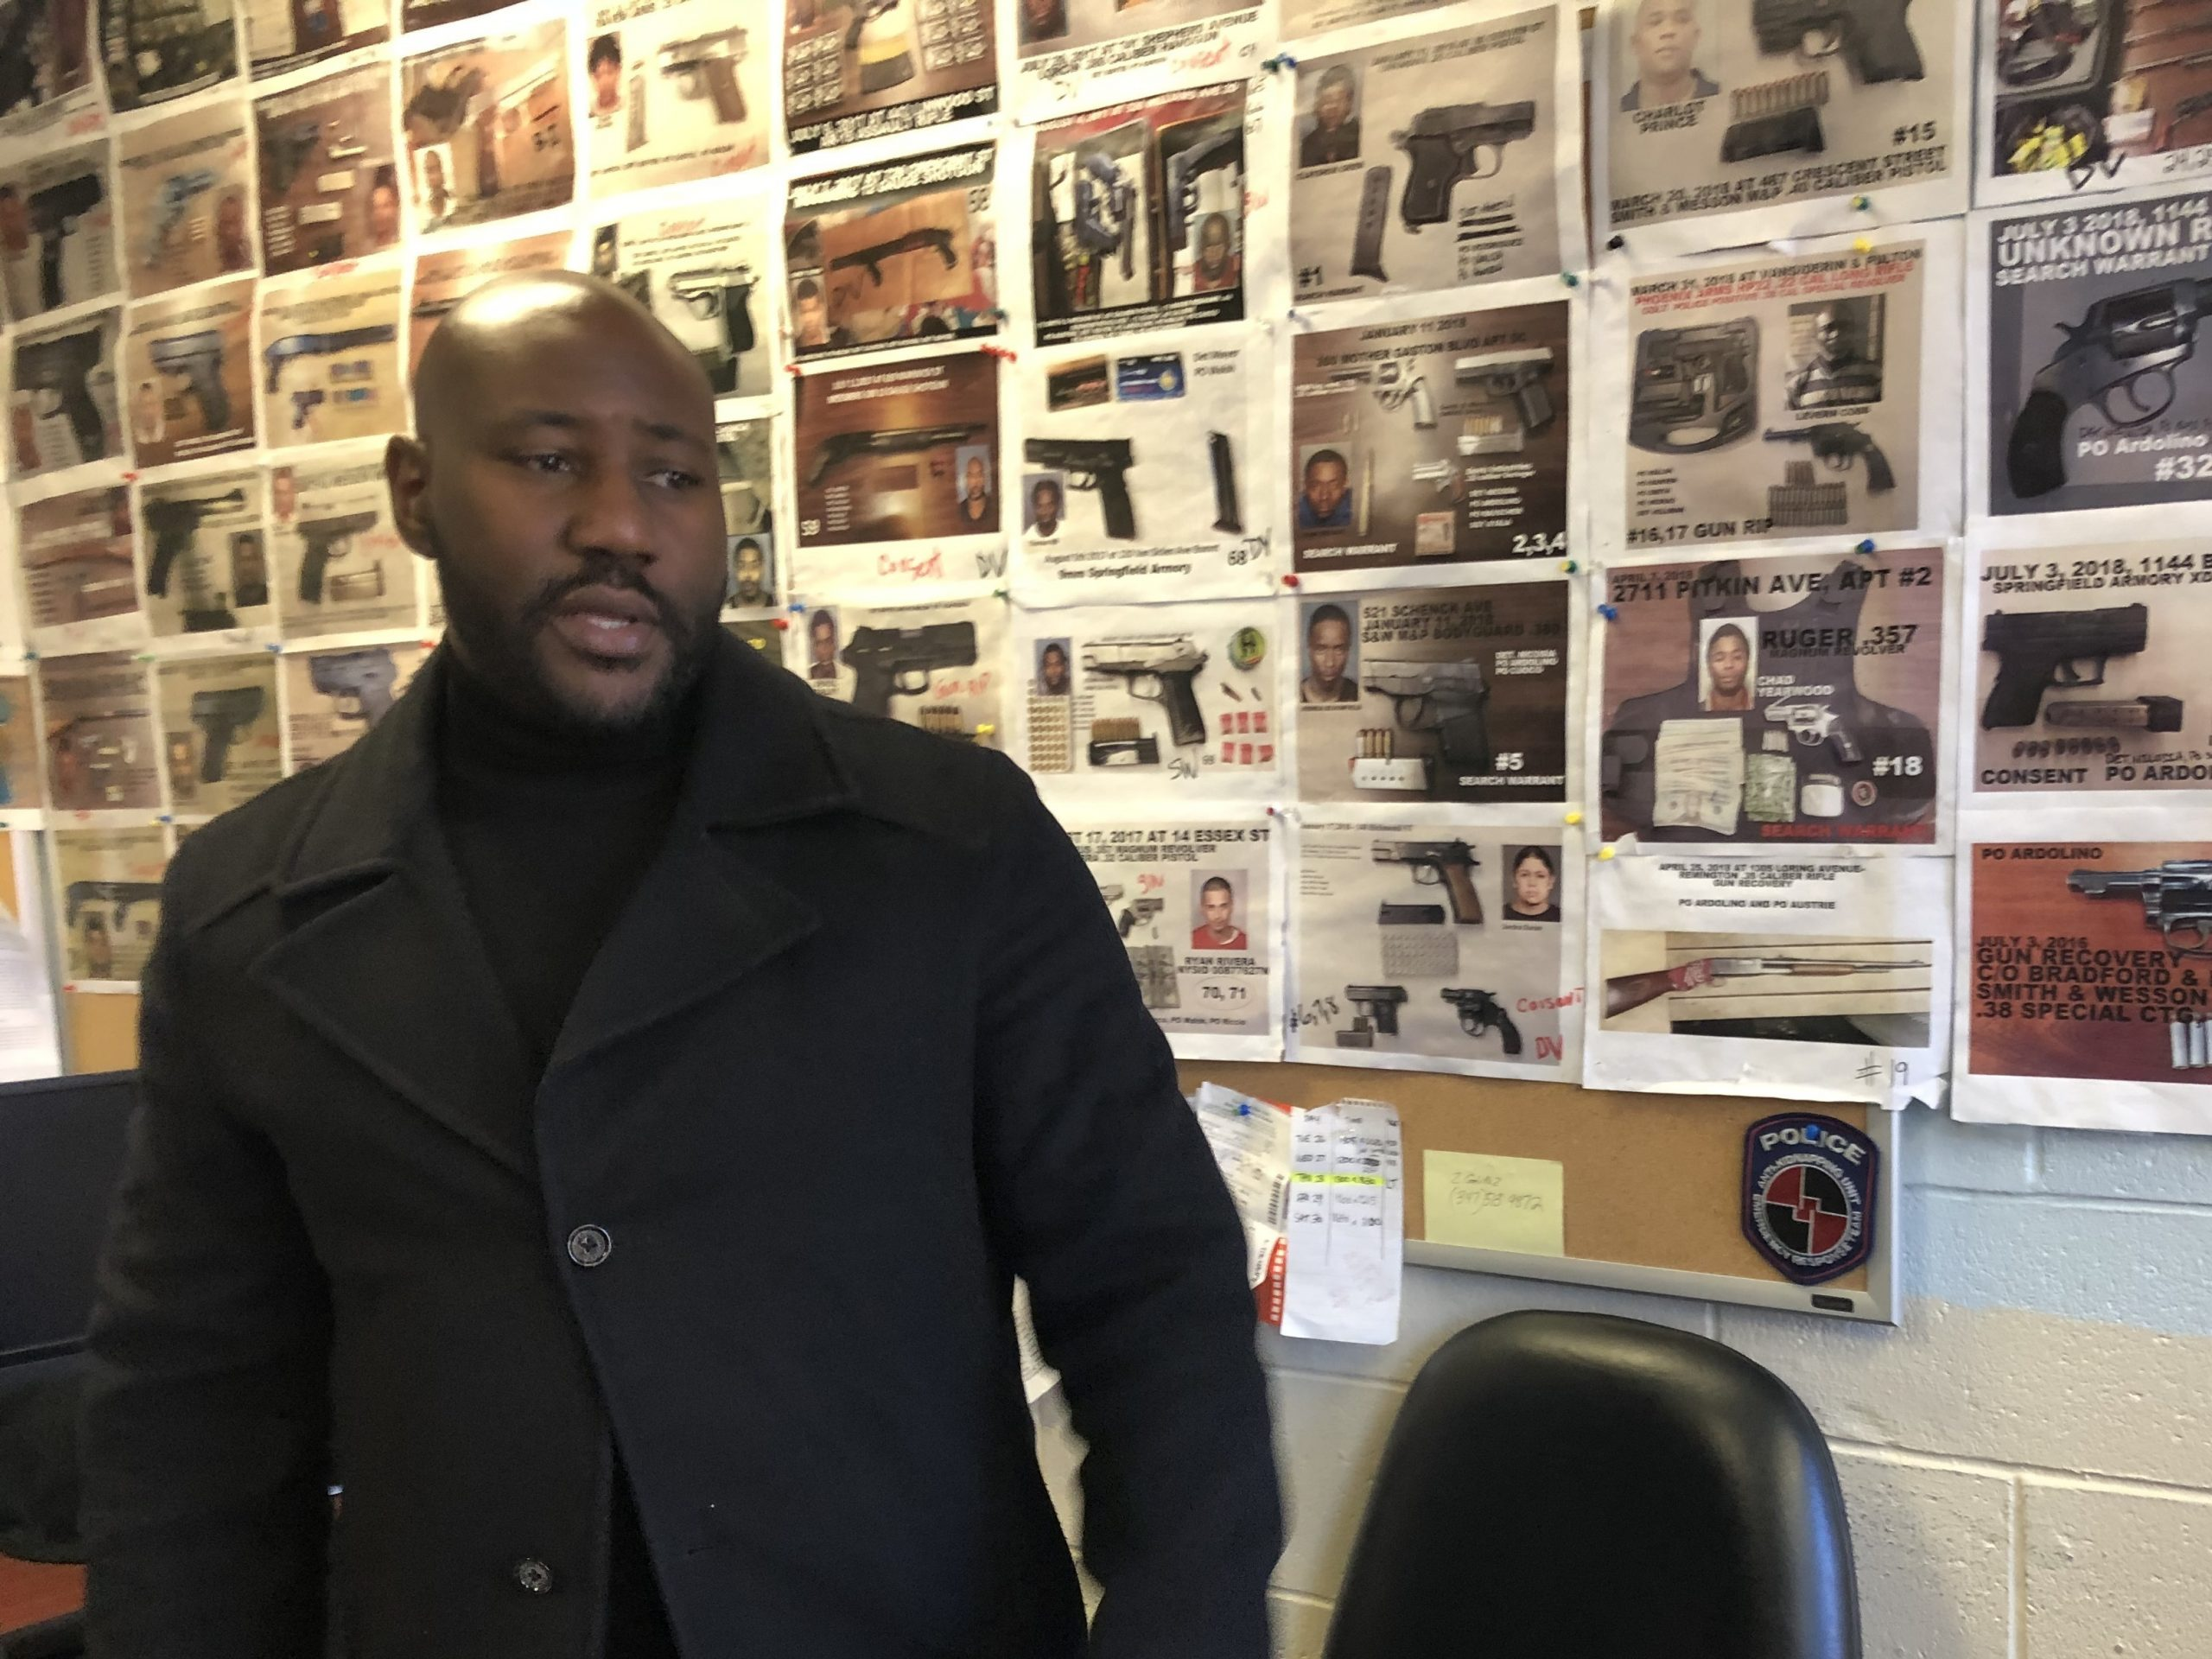 New York police Sgt. Damon Martin in the 75th Precinct field intelligence office, where the walls are covered with photos of seized illegal guns.